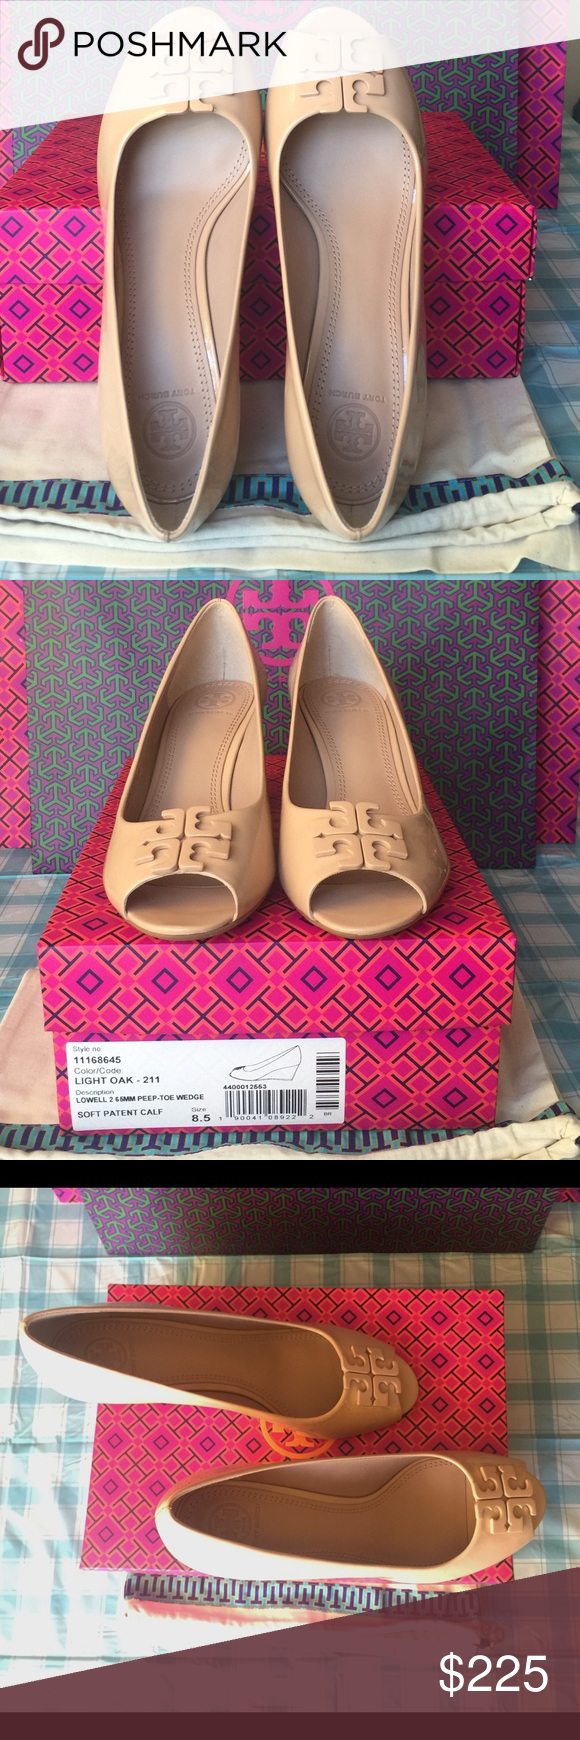 f4b3763dd4f50 TORY BURCH LOWELL PEEP-TOE WEDGE Authentic.Light Oak. Made in Brazil ...